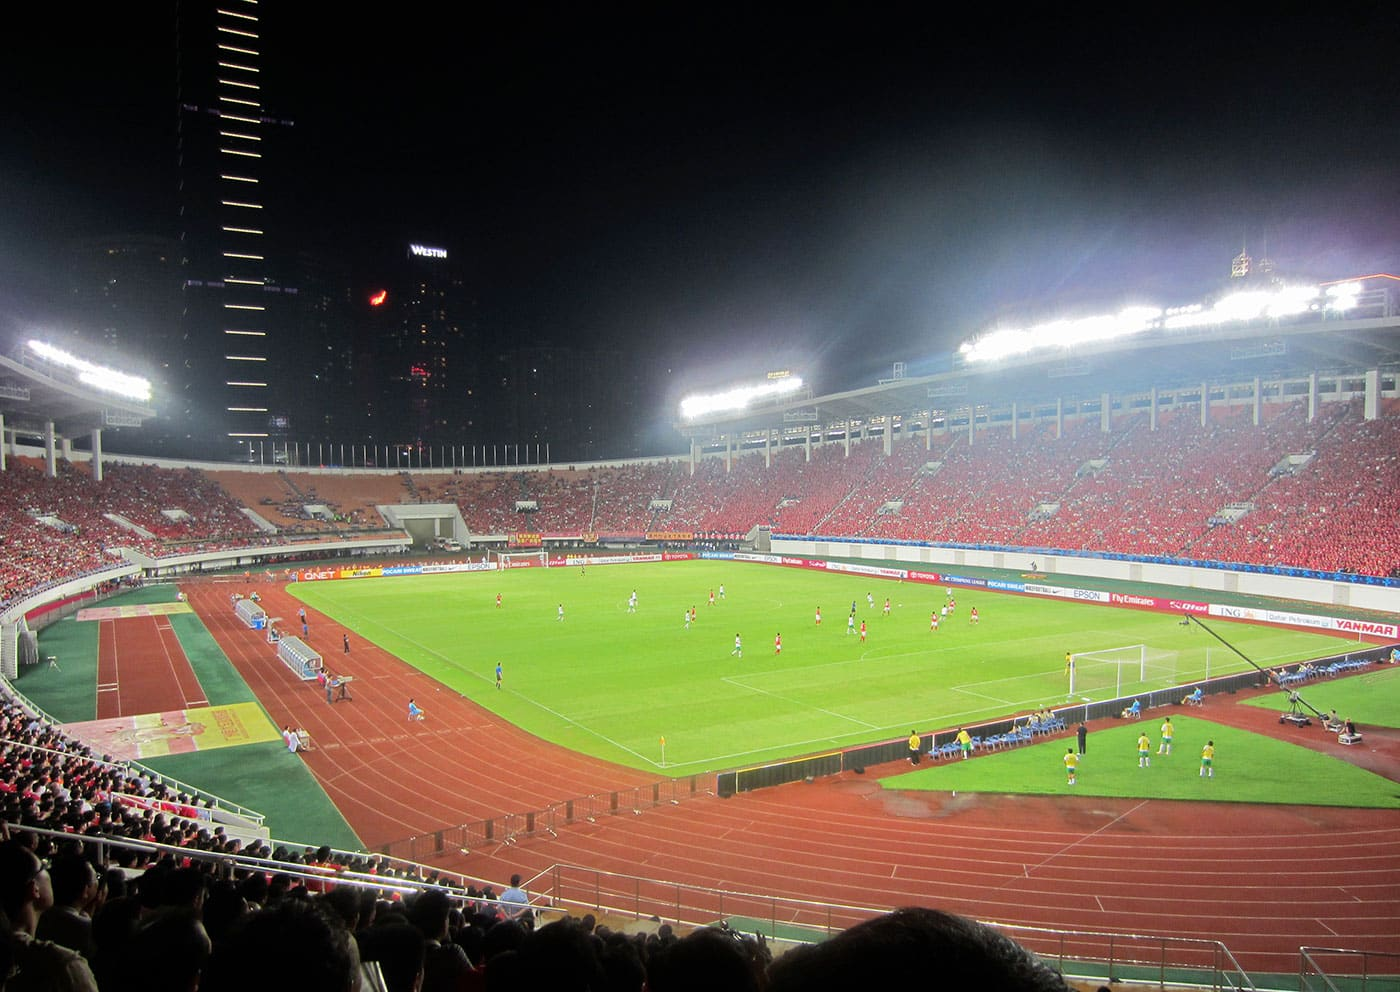 Guangzhou Evergrande football